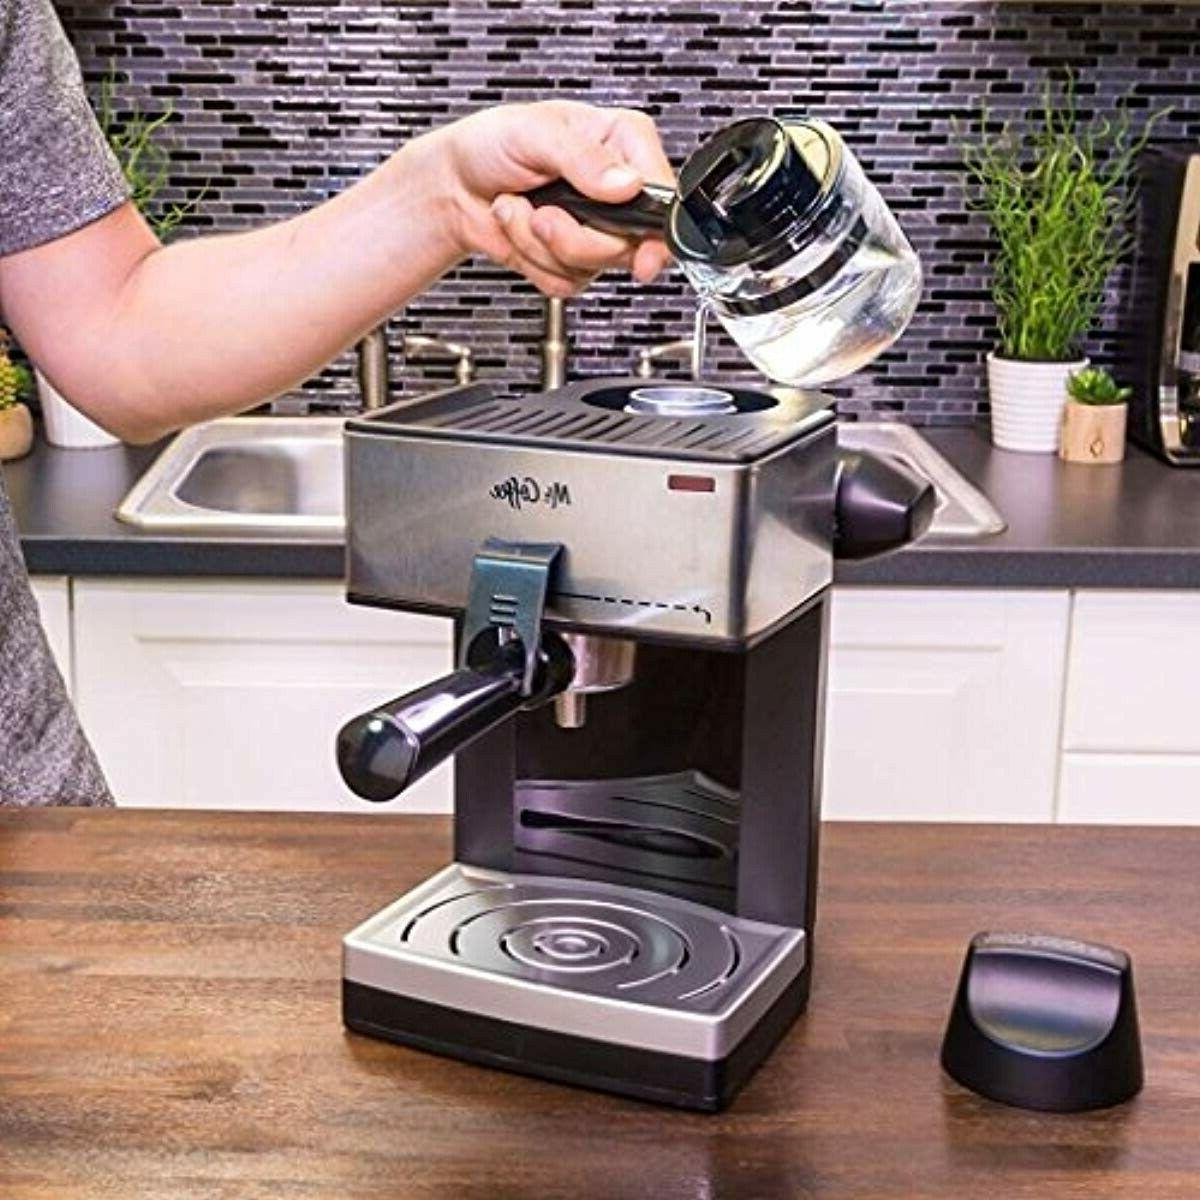 Home Espresso Expresso Coffee Steam NEW